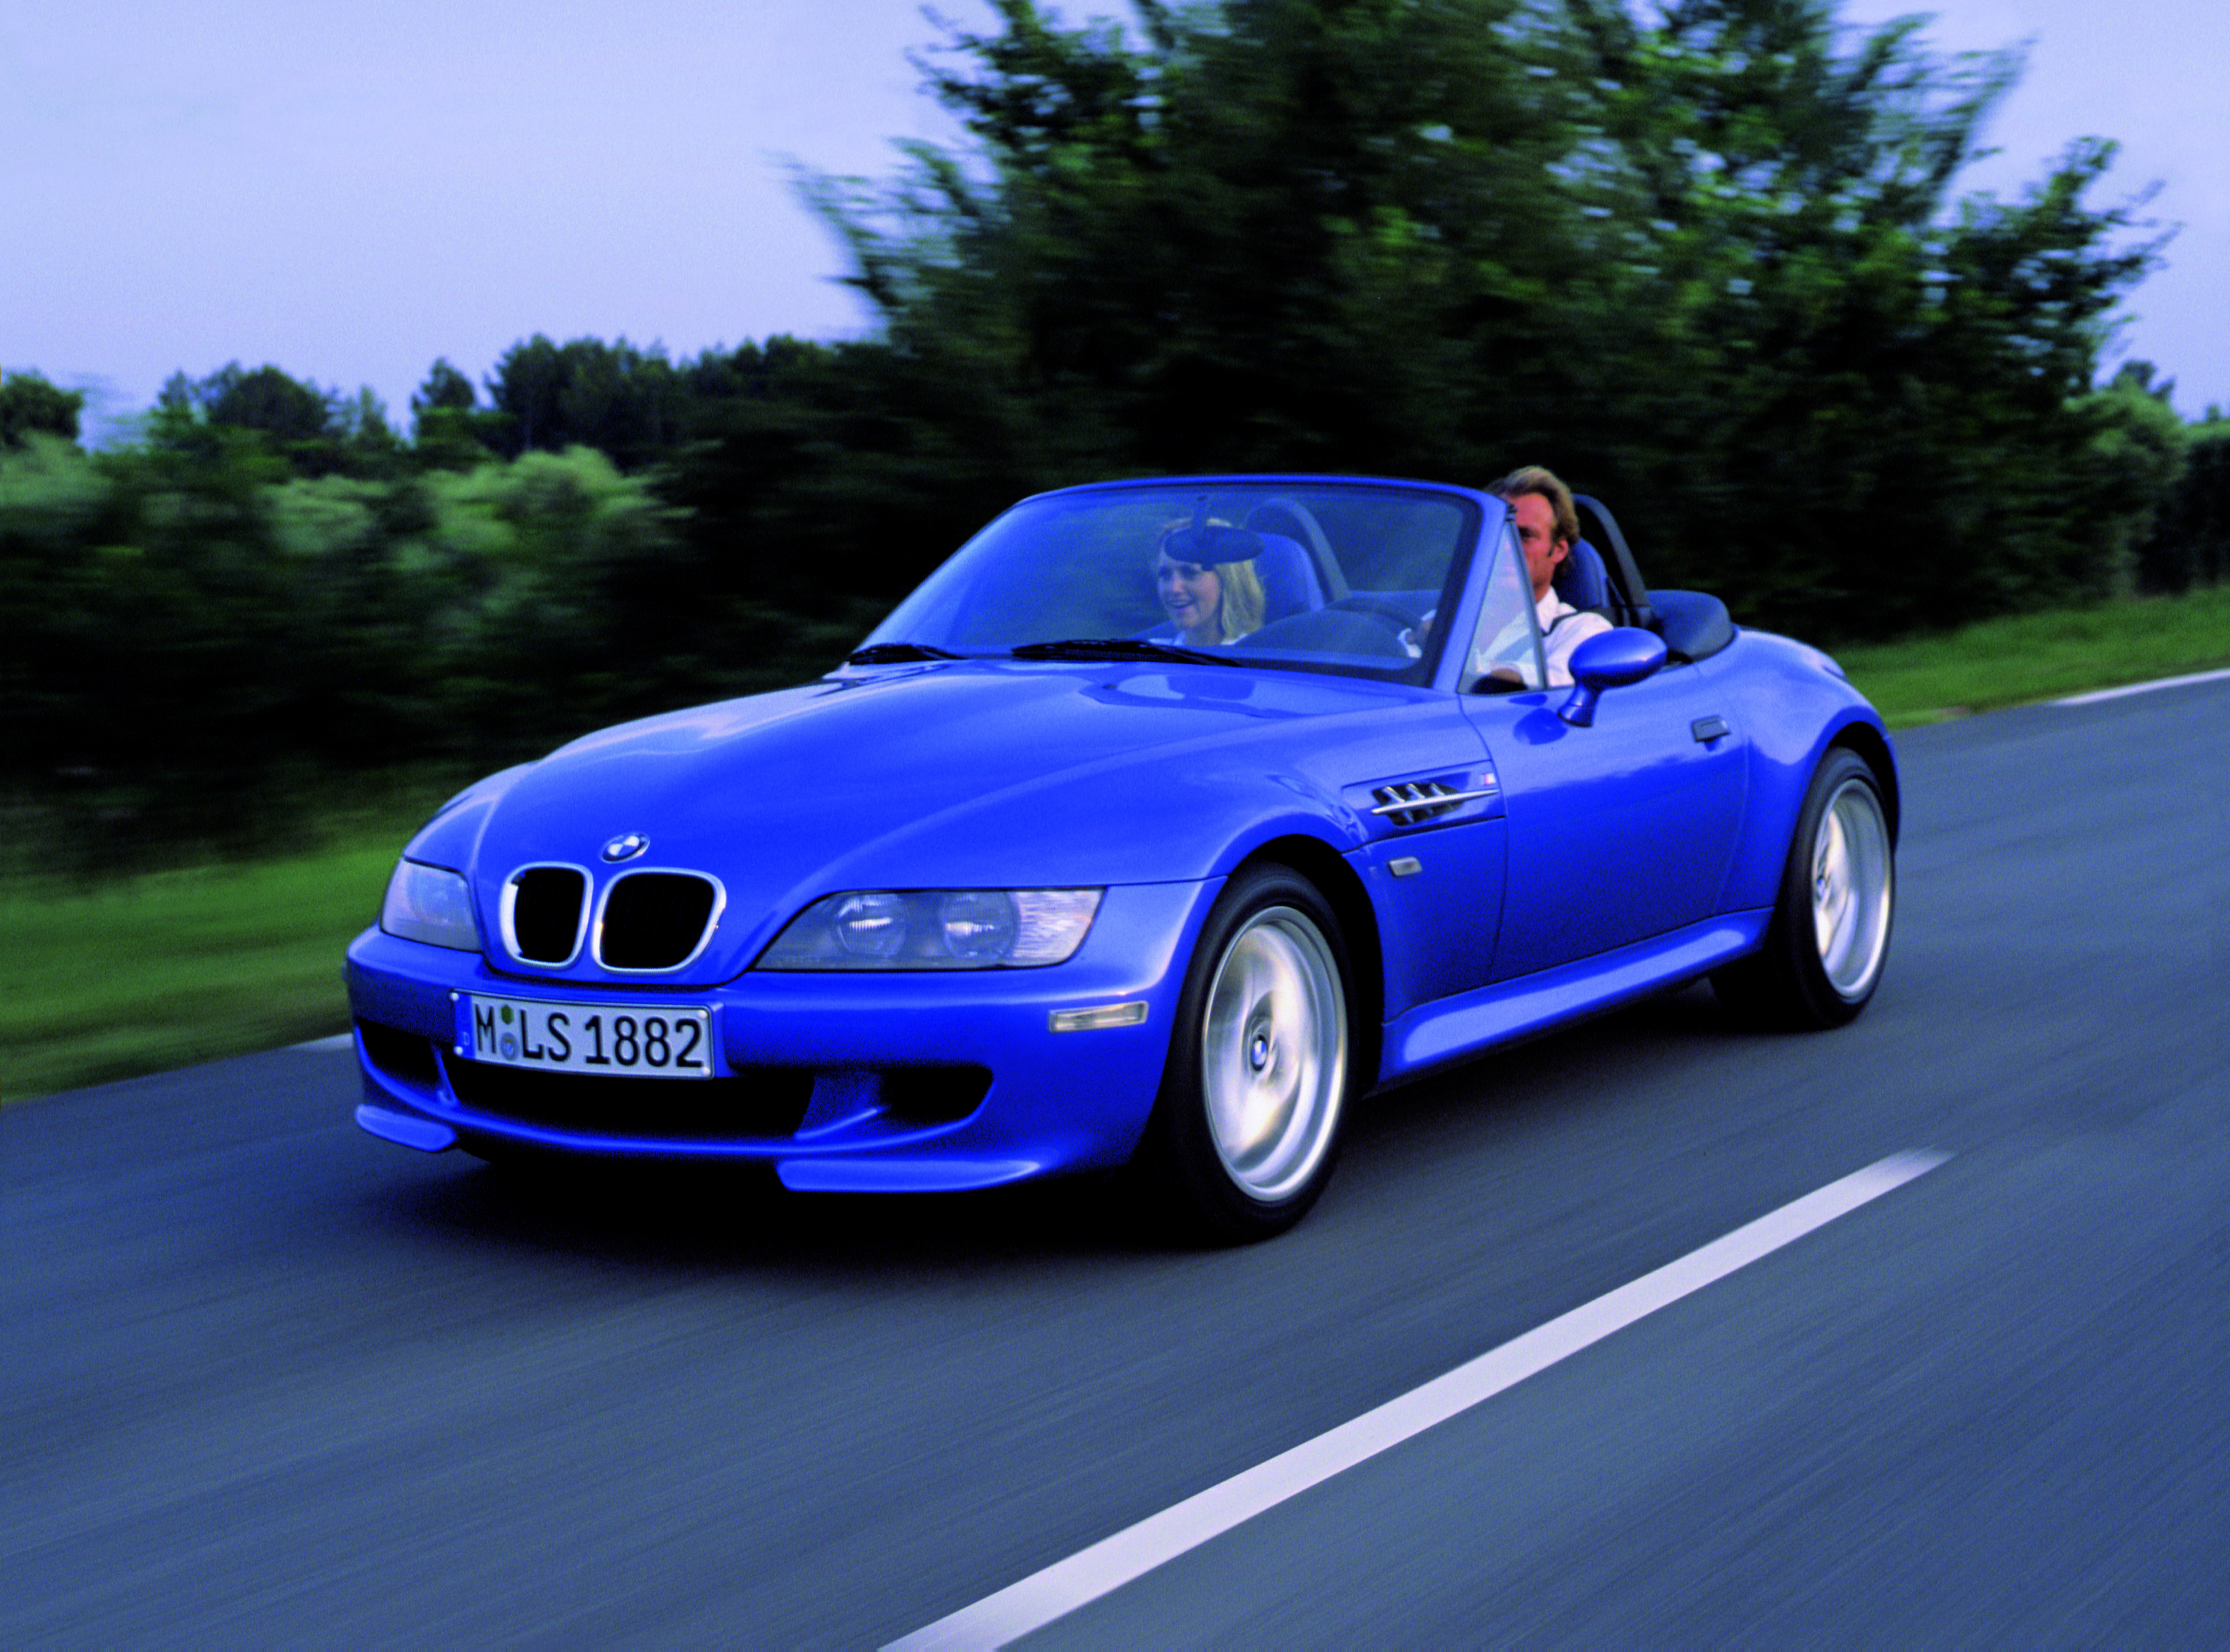 Bmw Z3m Roadster Bmw Z3 M Roadster Mike Crawat Flickr Bmw